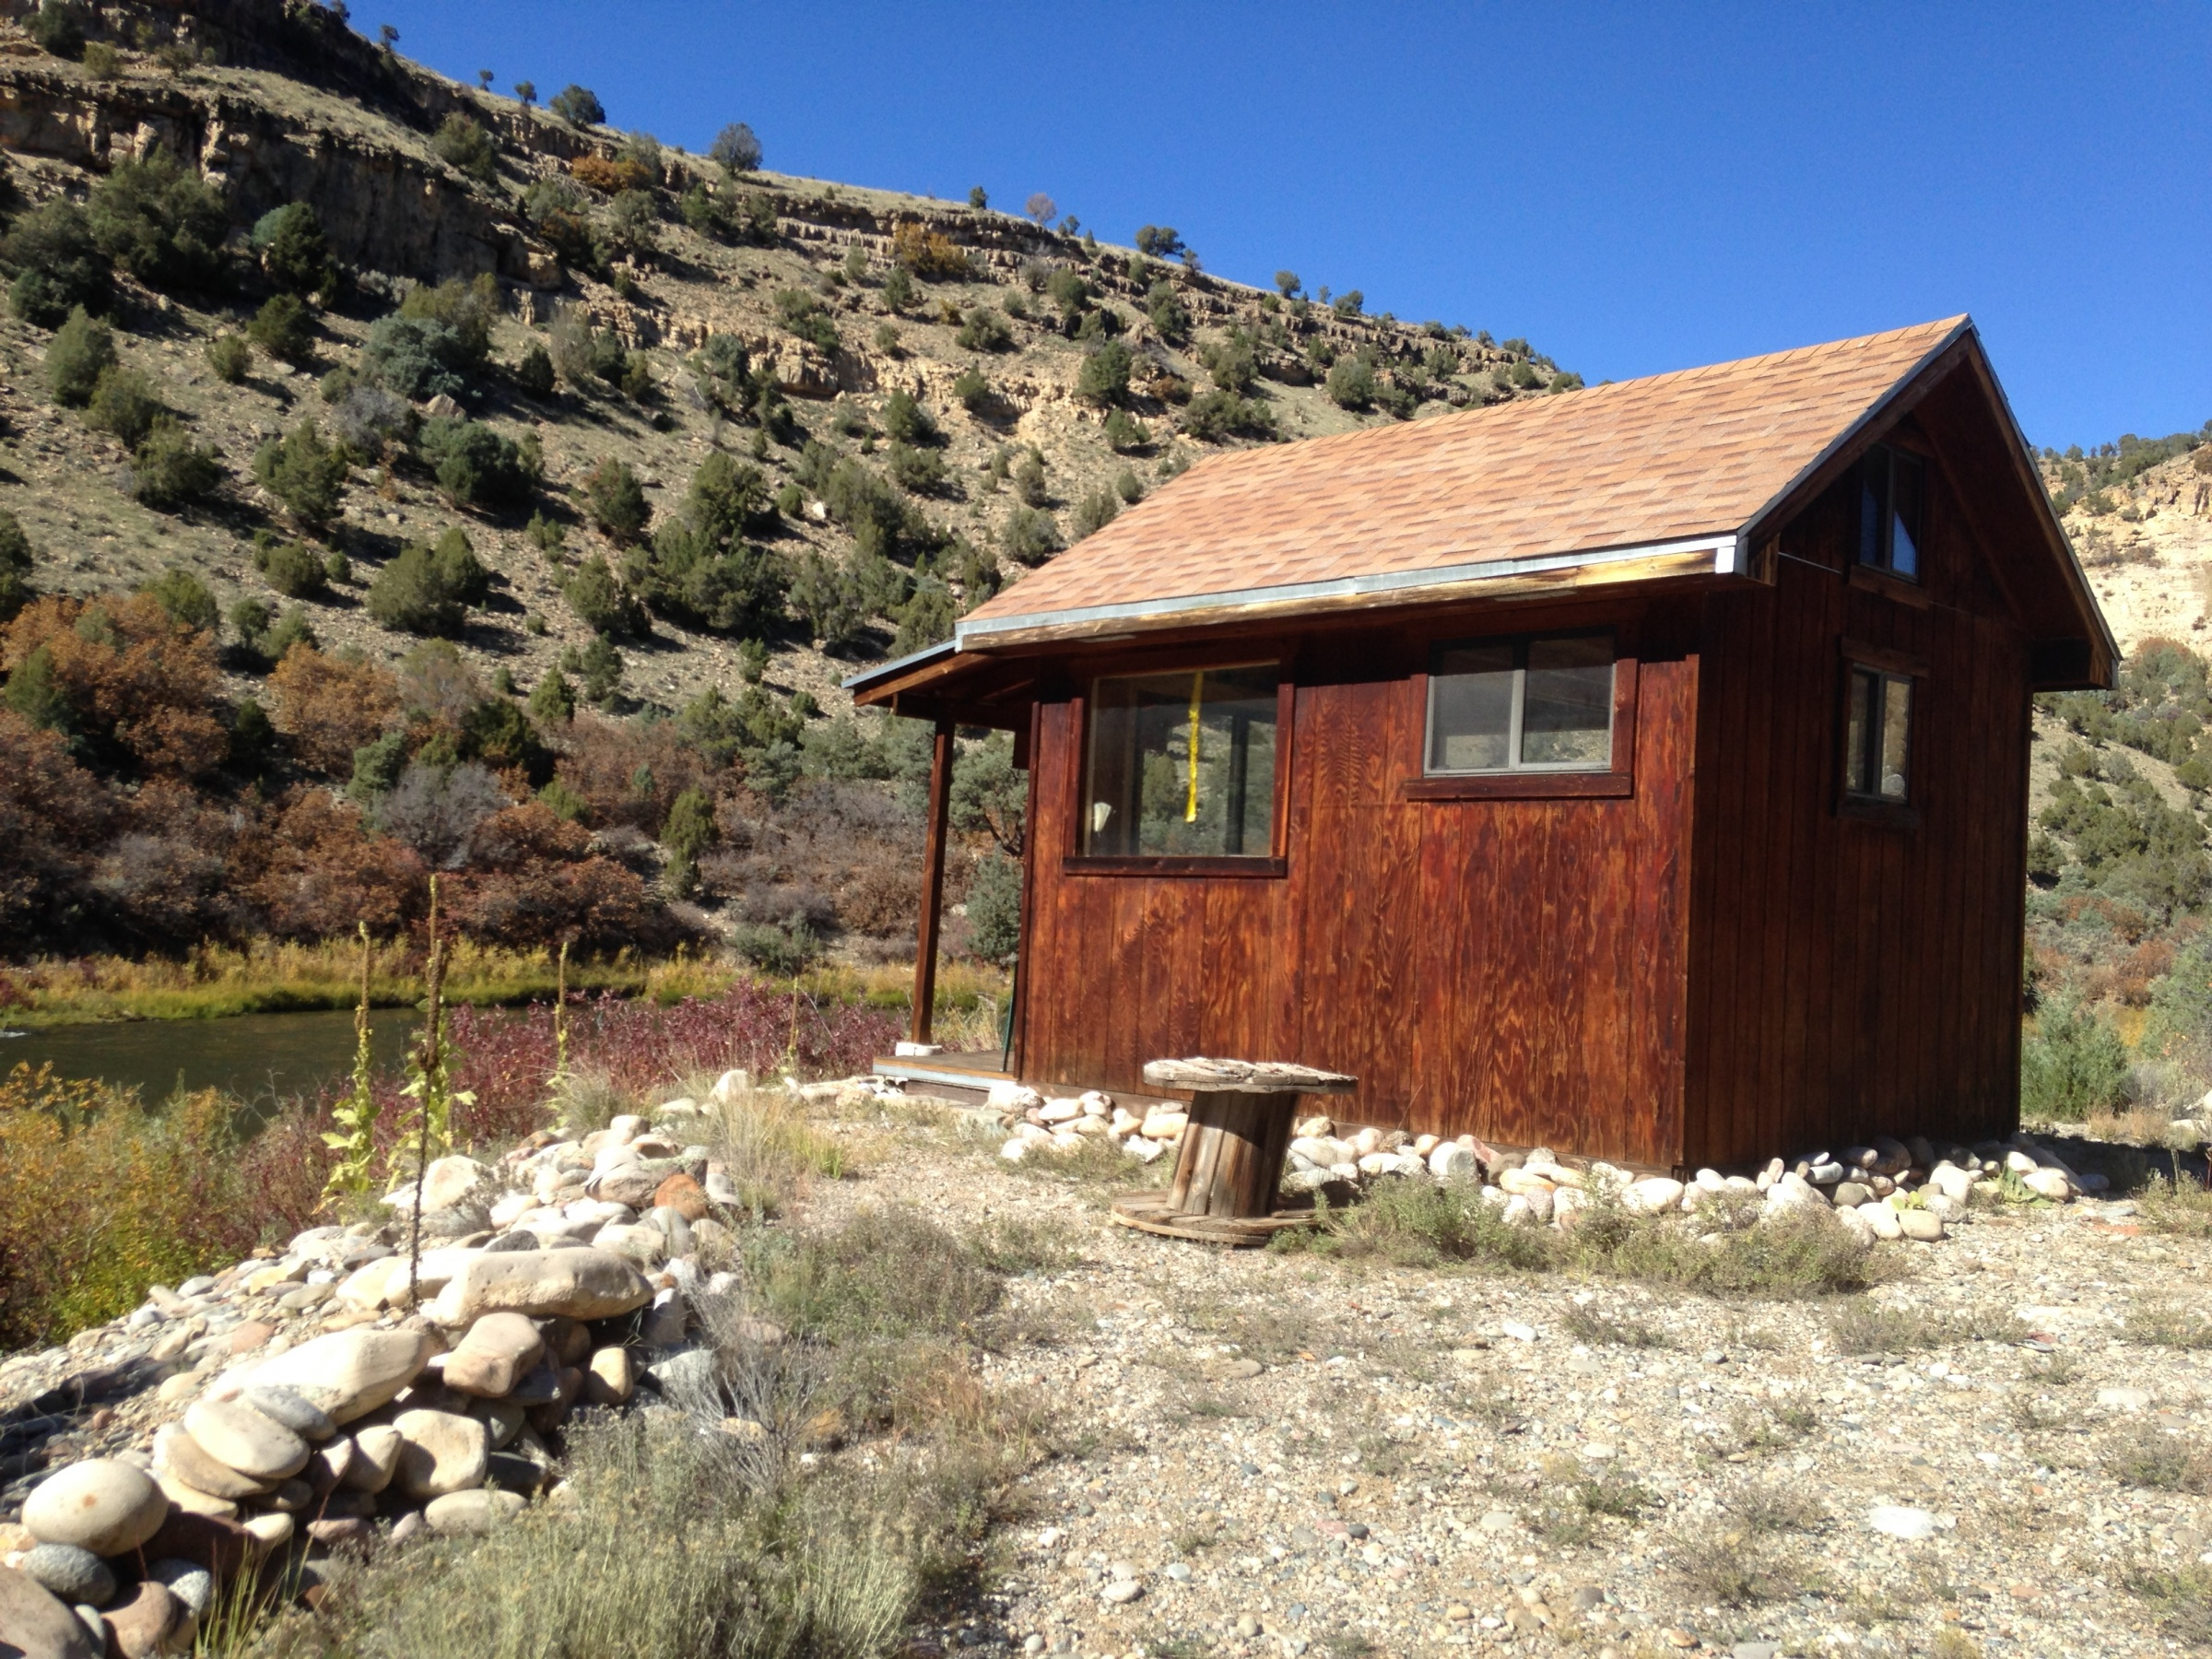 Click image for larger version  Name:cabin.jpg Views:191 Size:1.72 MB ID:10177